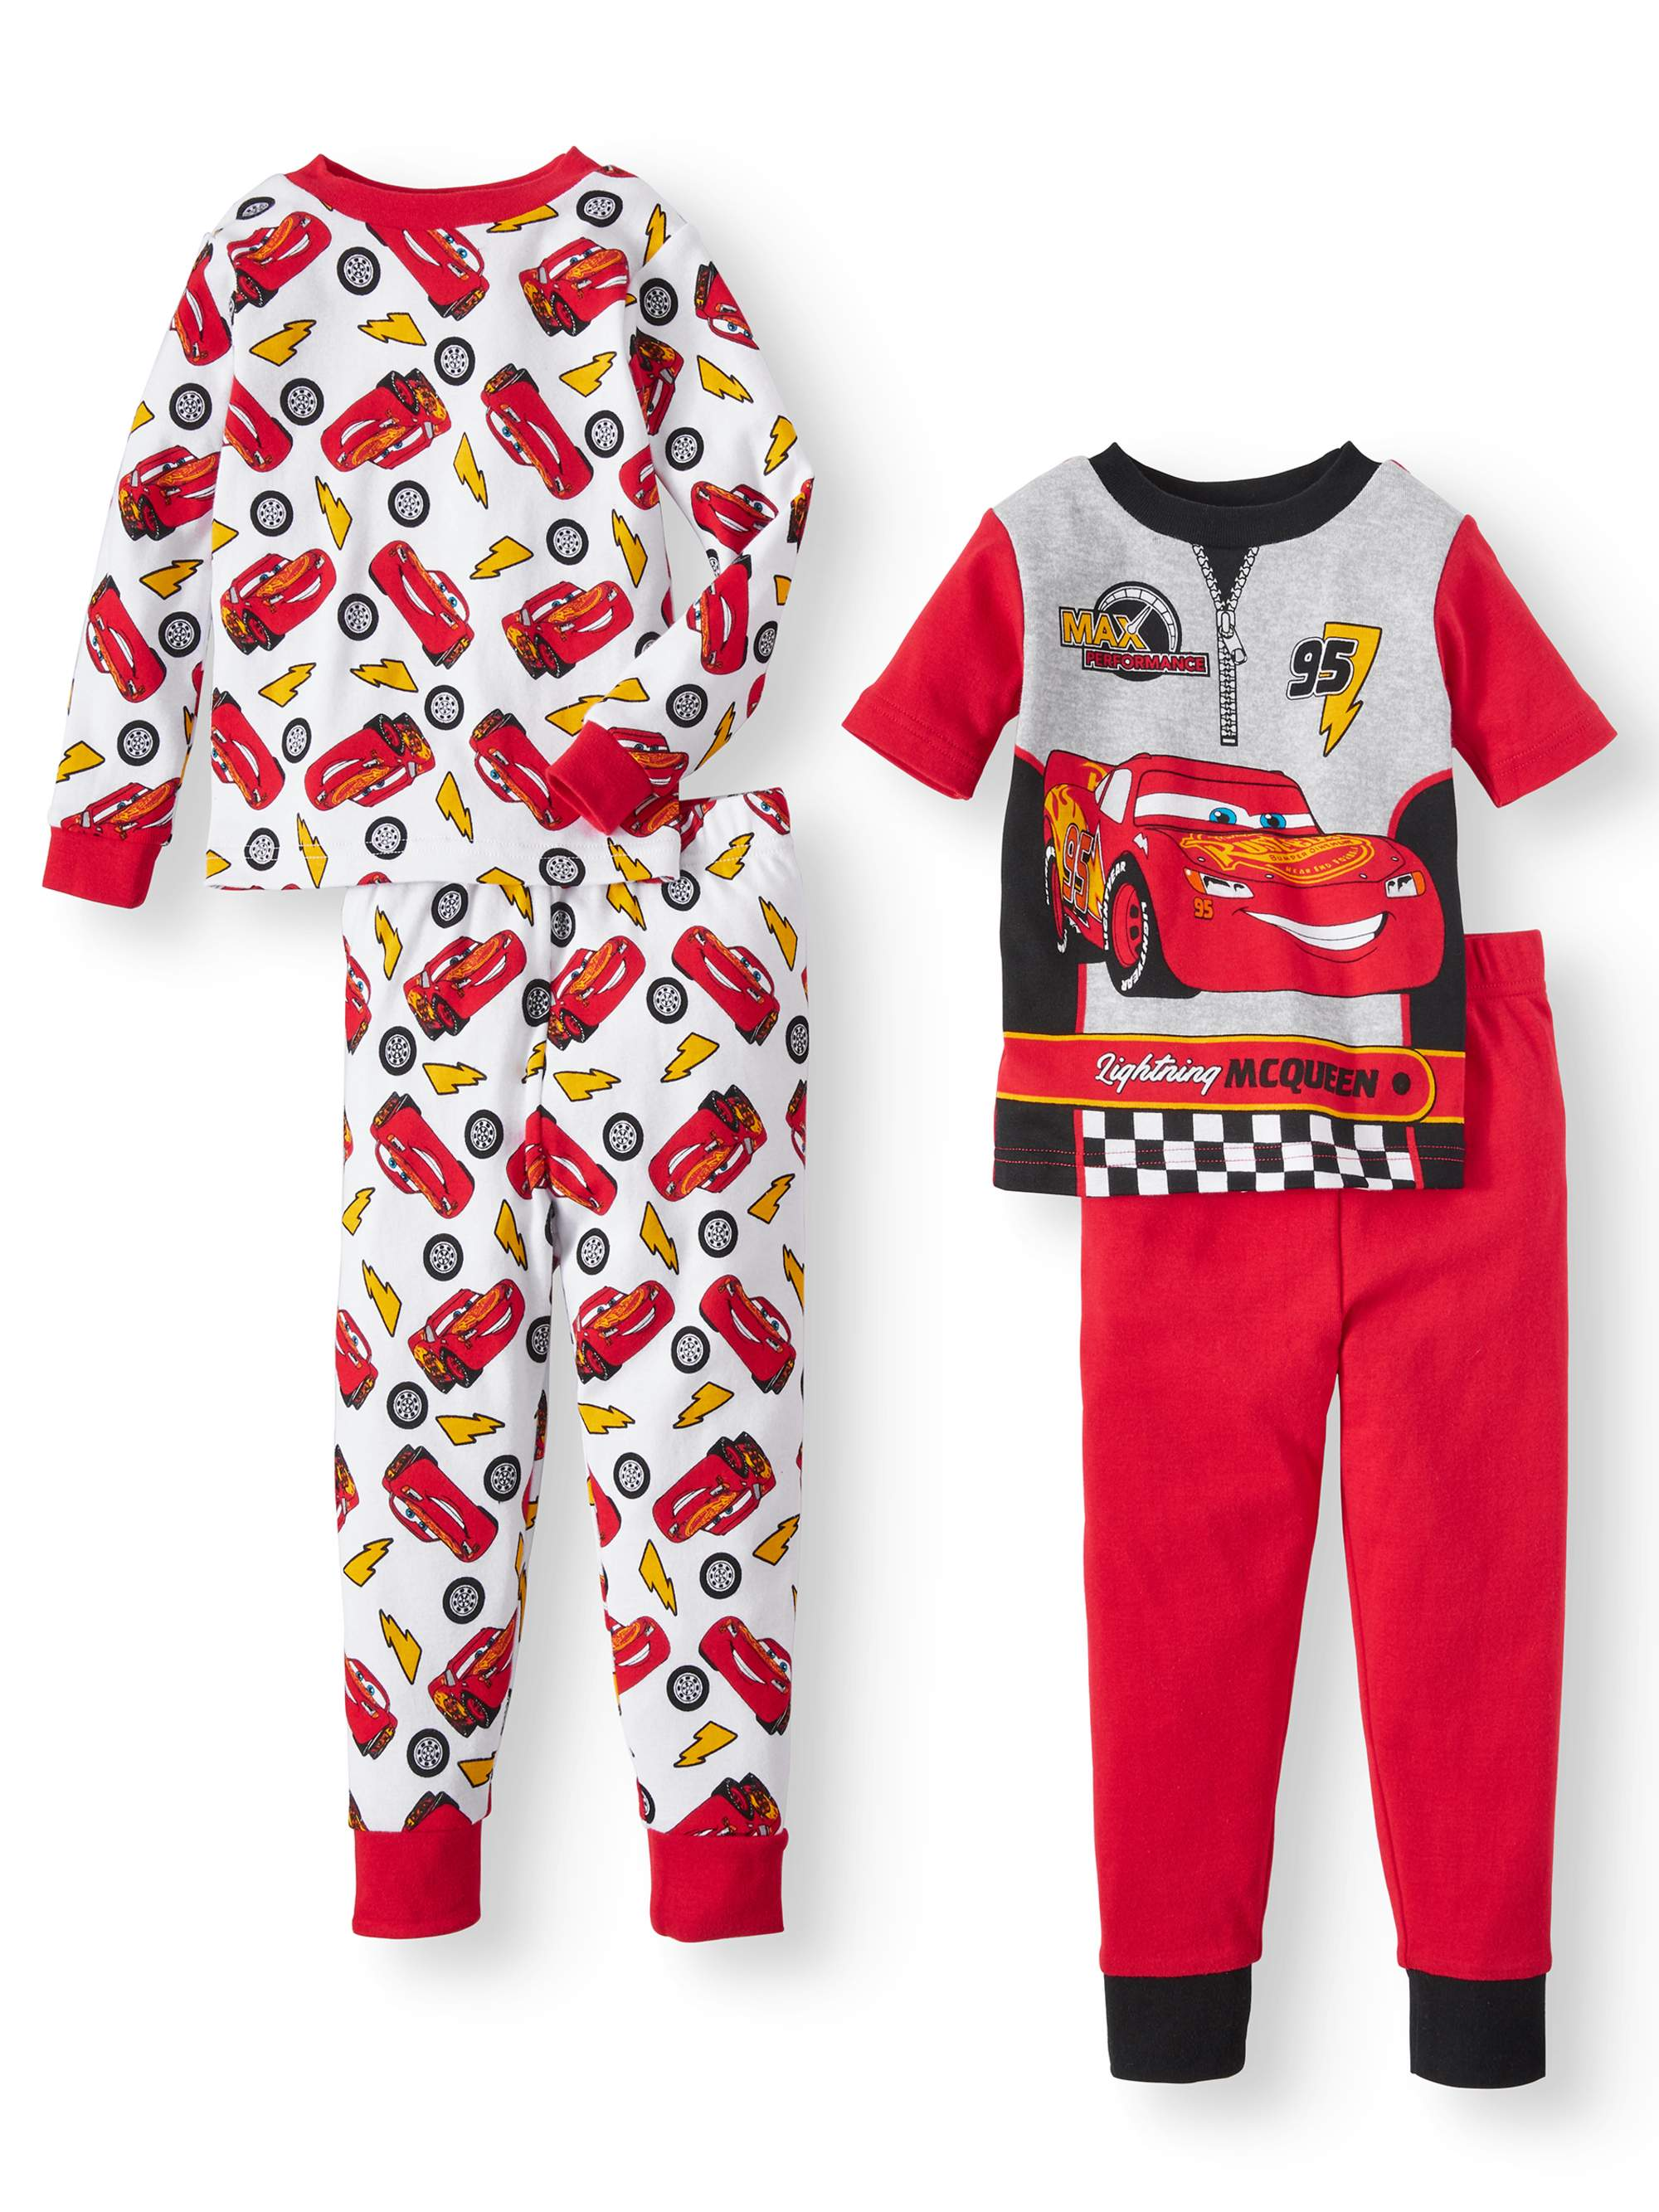 CARS Toddler Boys' Short Sleeve and Long Sleeve Cotton Tight Fit Pajamas, 4-Piece Set